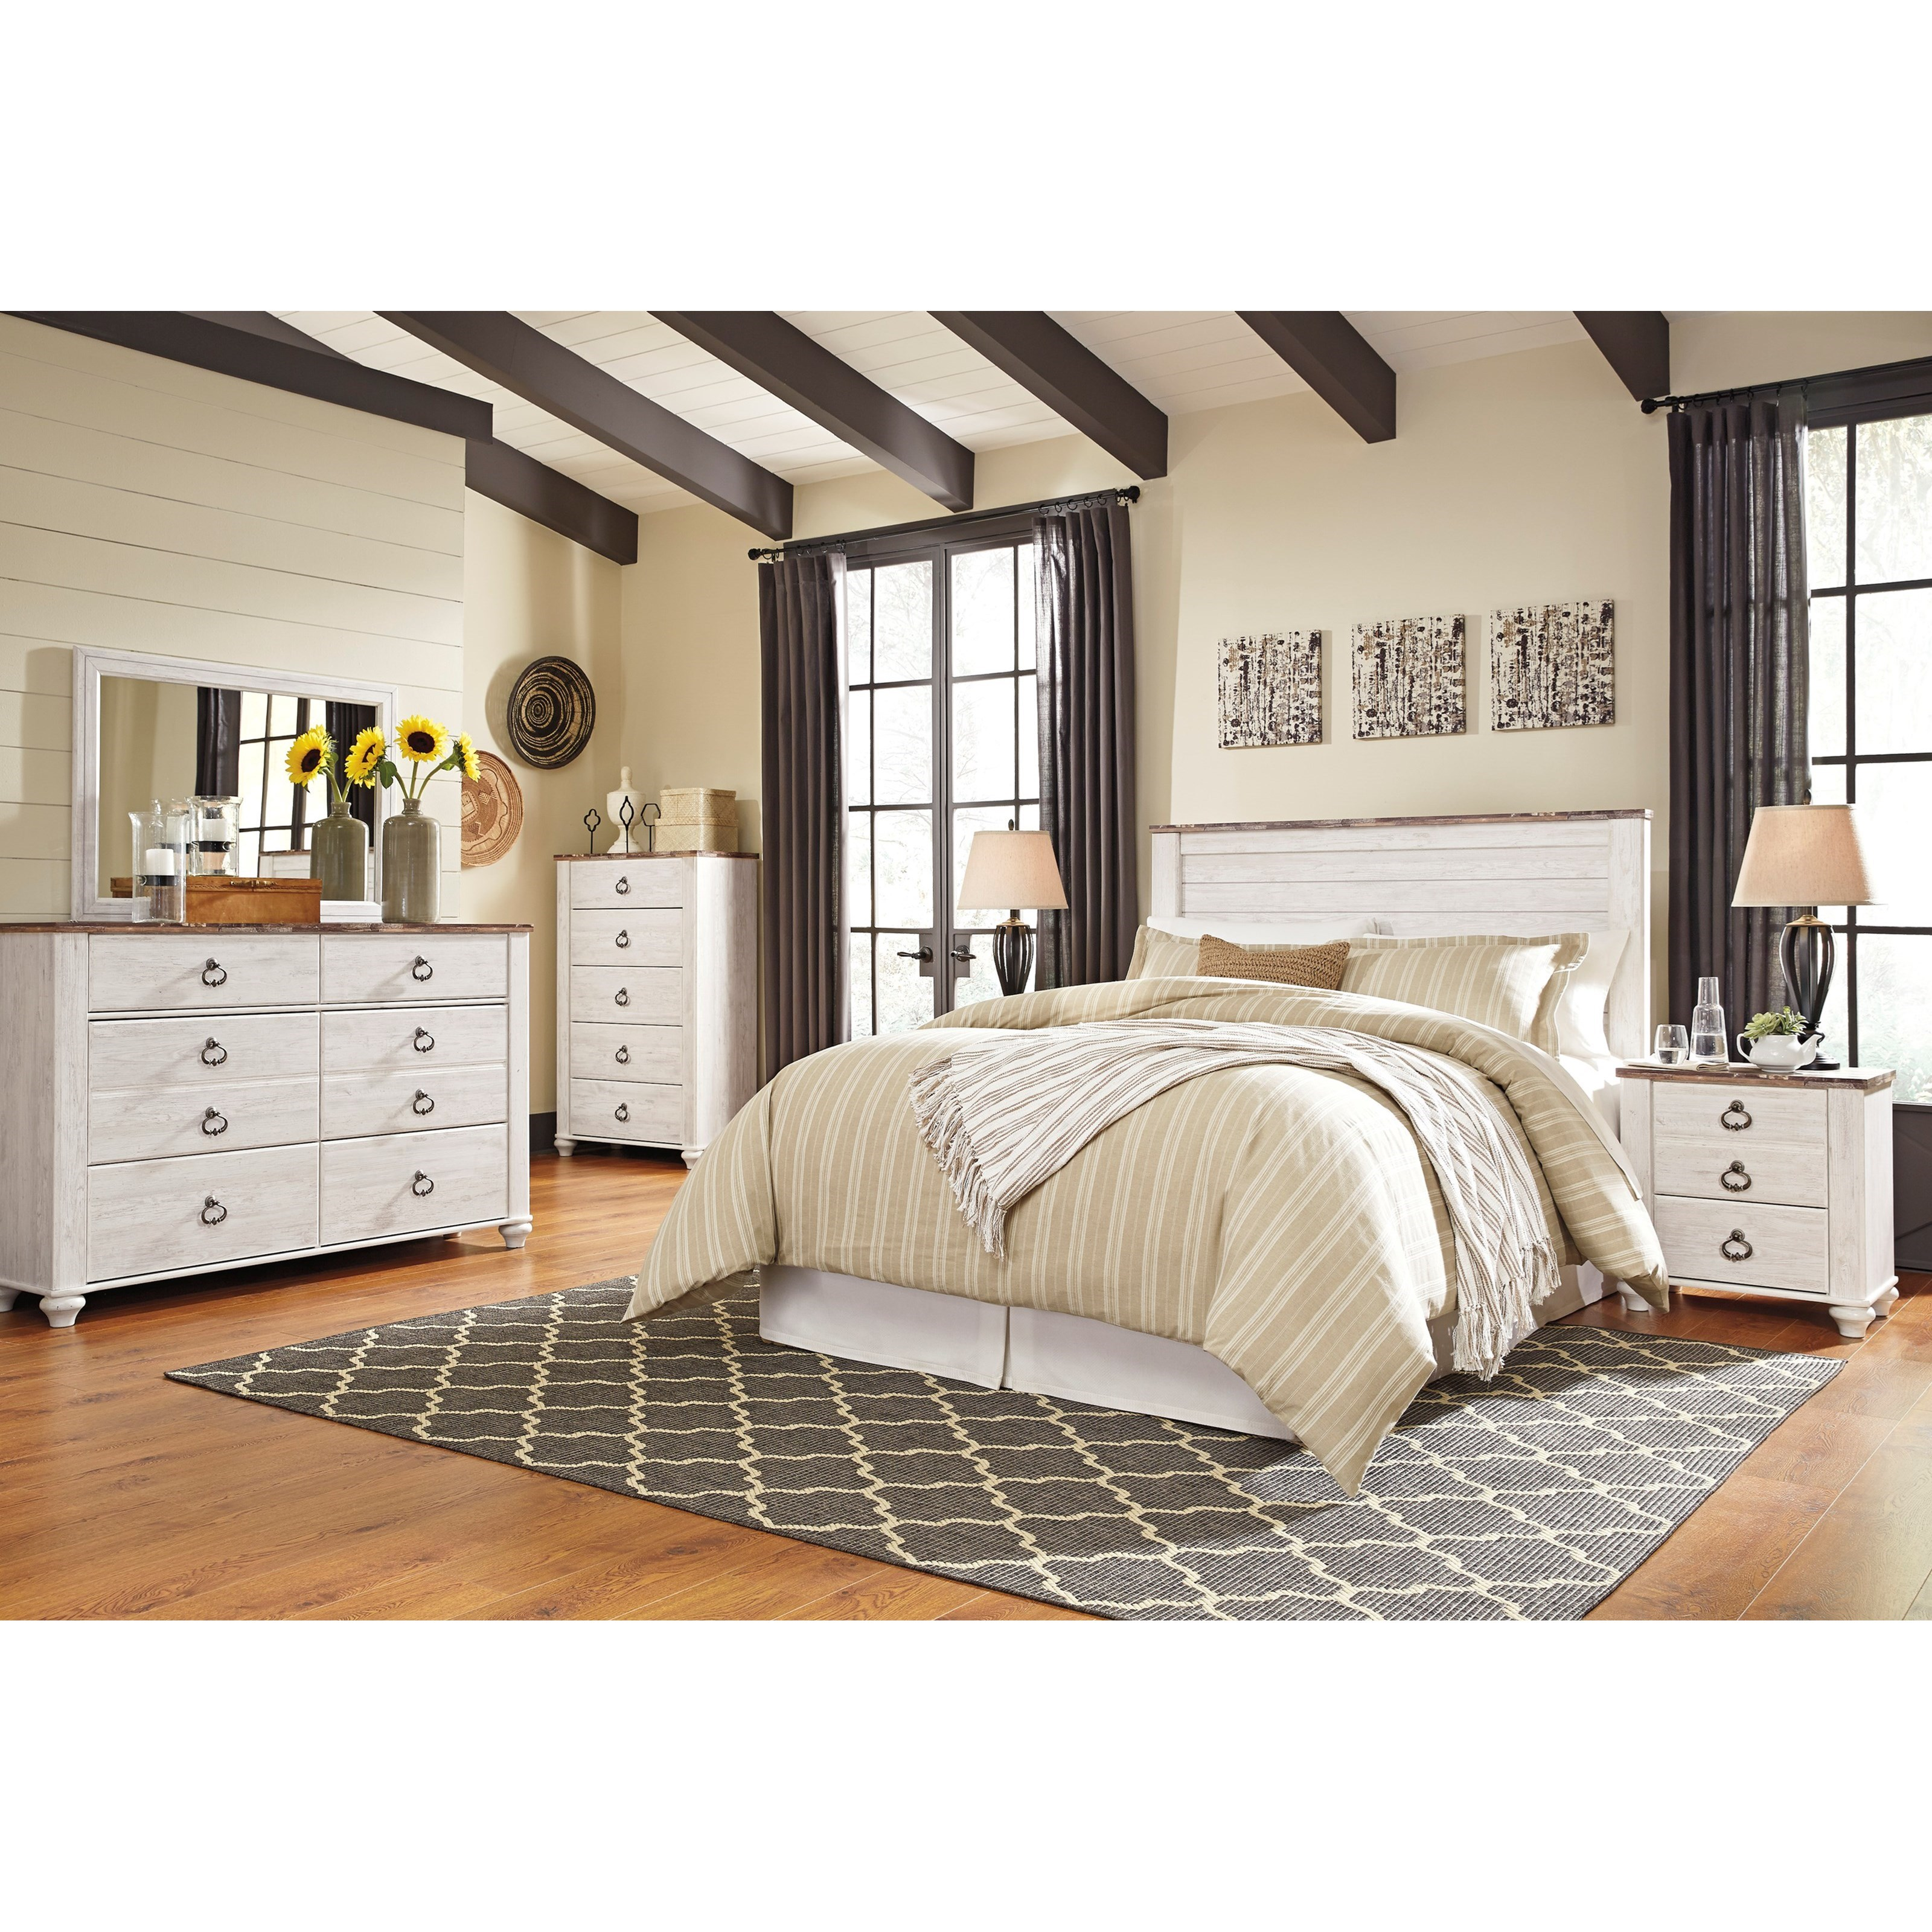 Signature design by ashley willowton queen full bedroom - Ashley furniture full bedroom sets ...